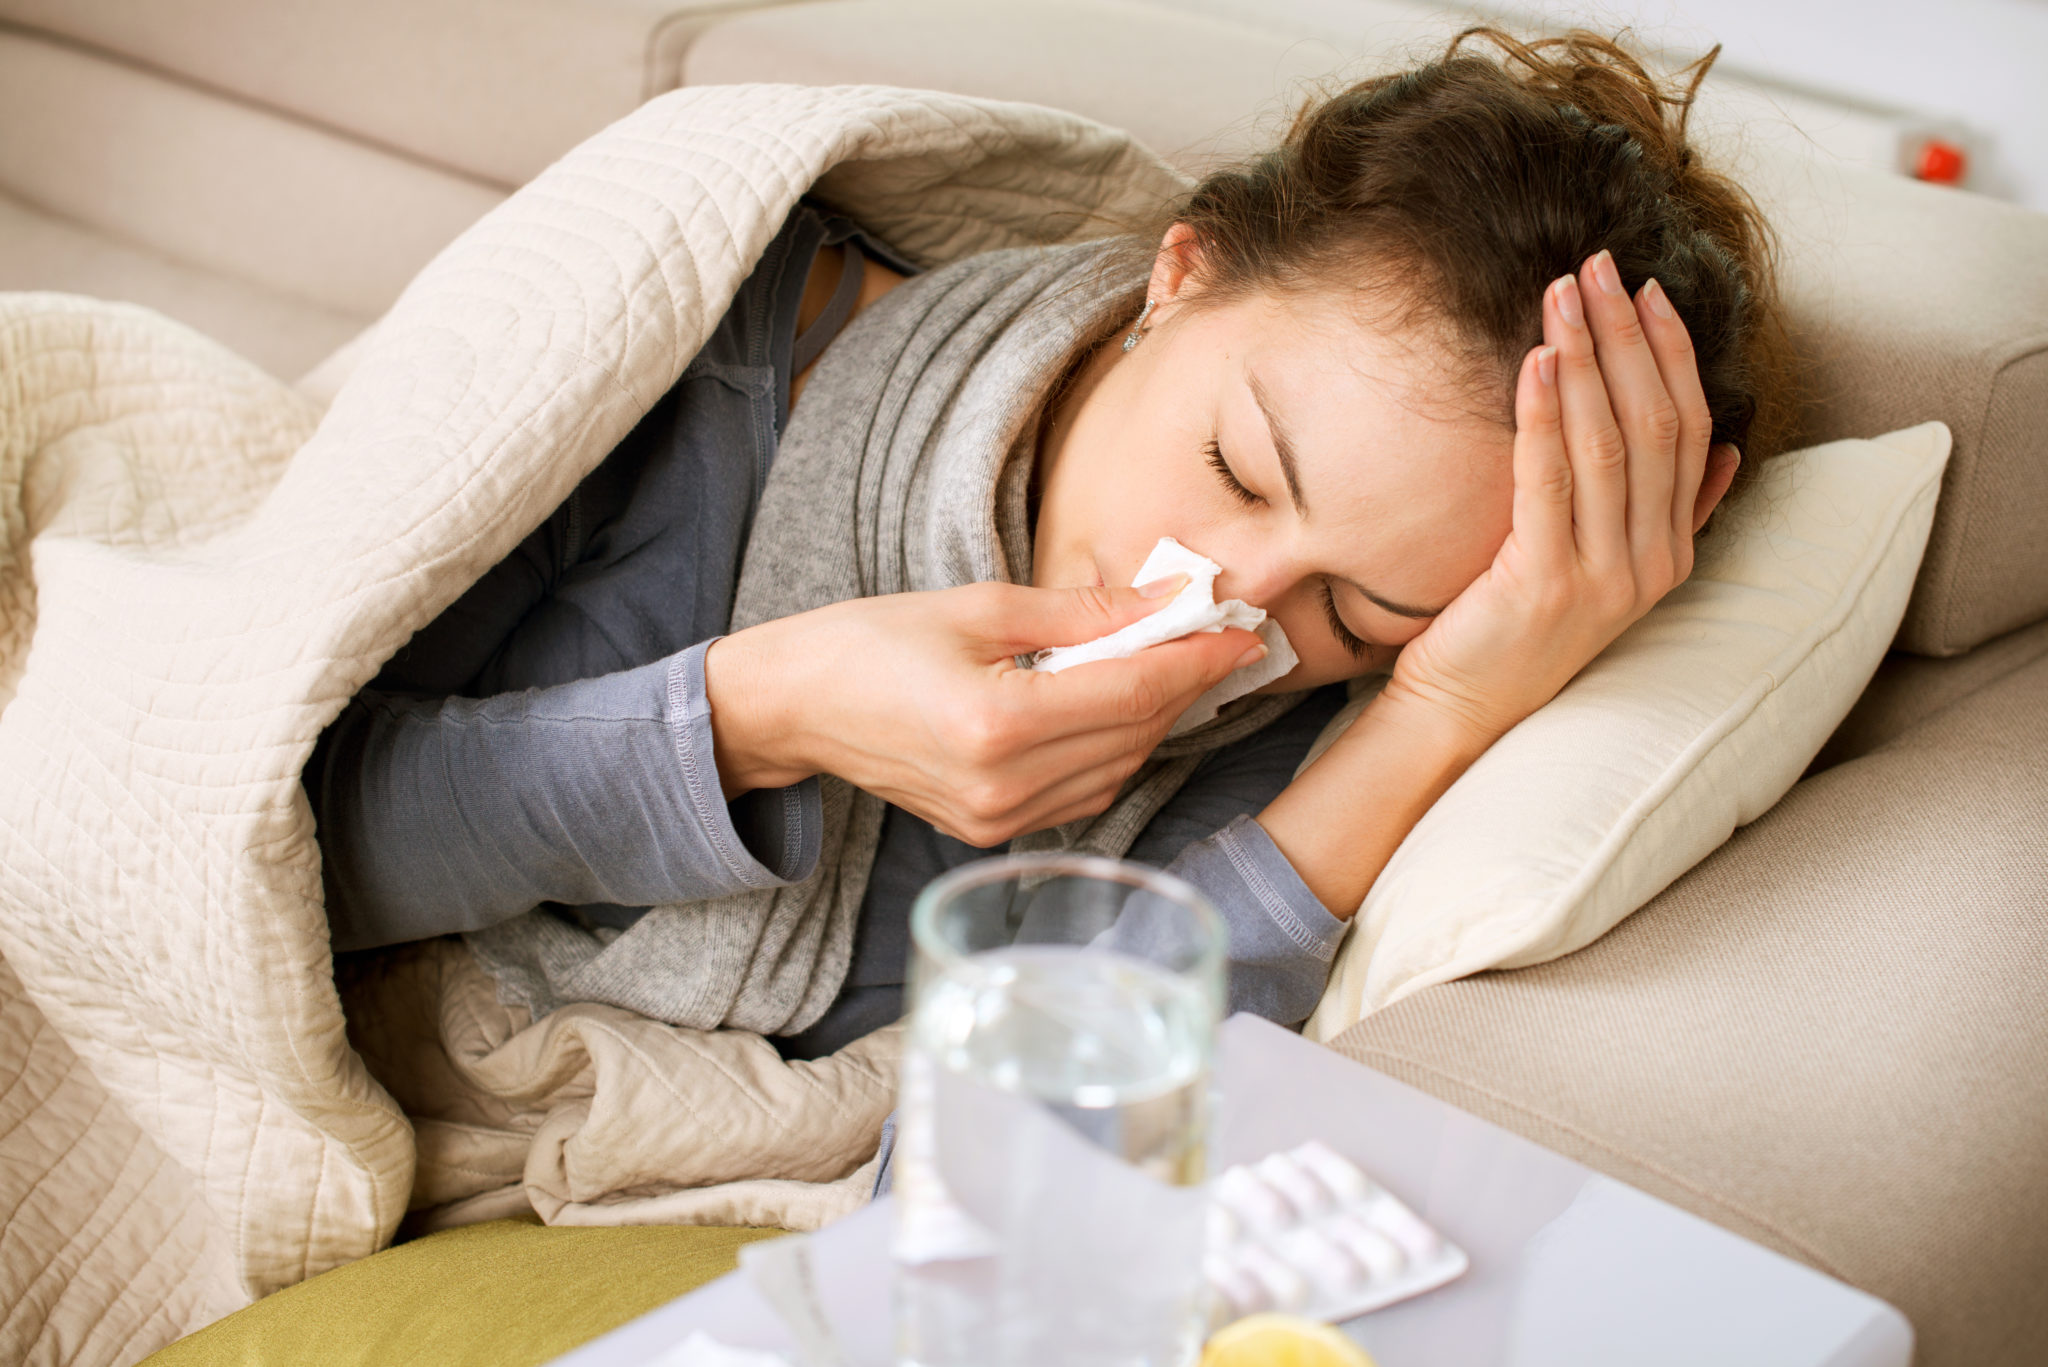 8 safety tips for keeping safe and healthy during flu season